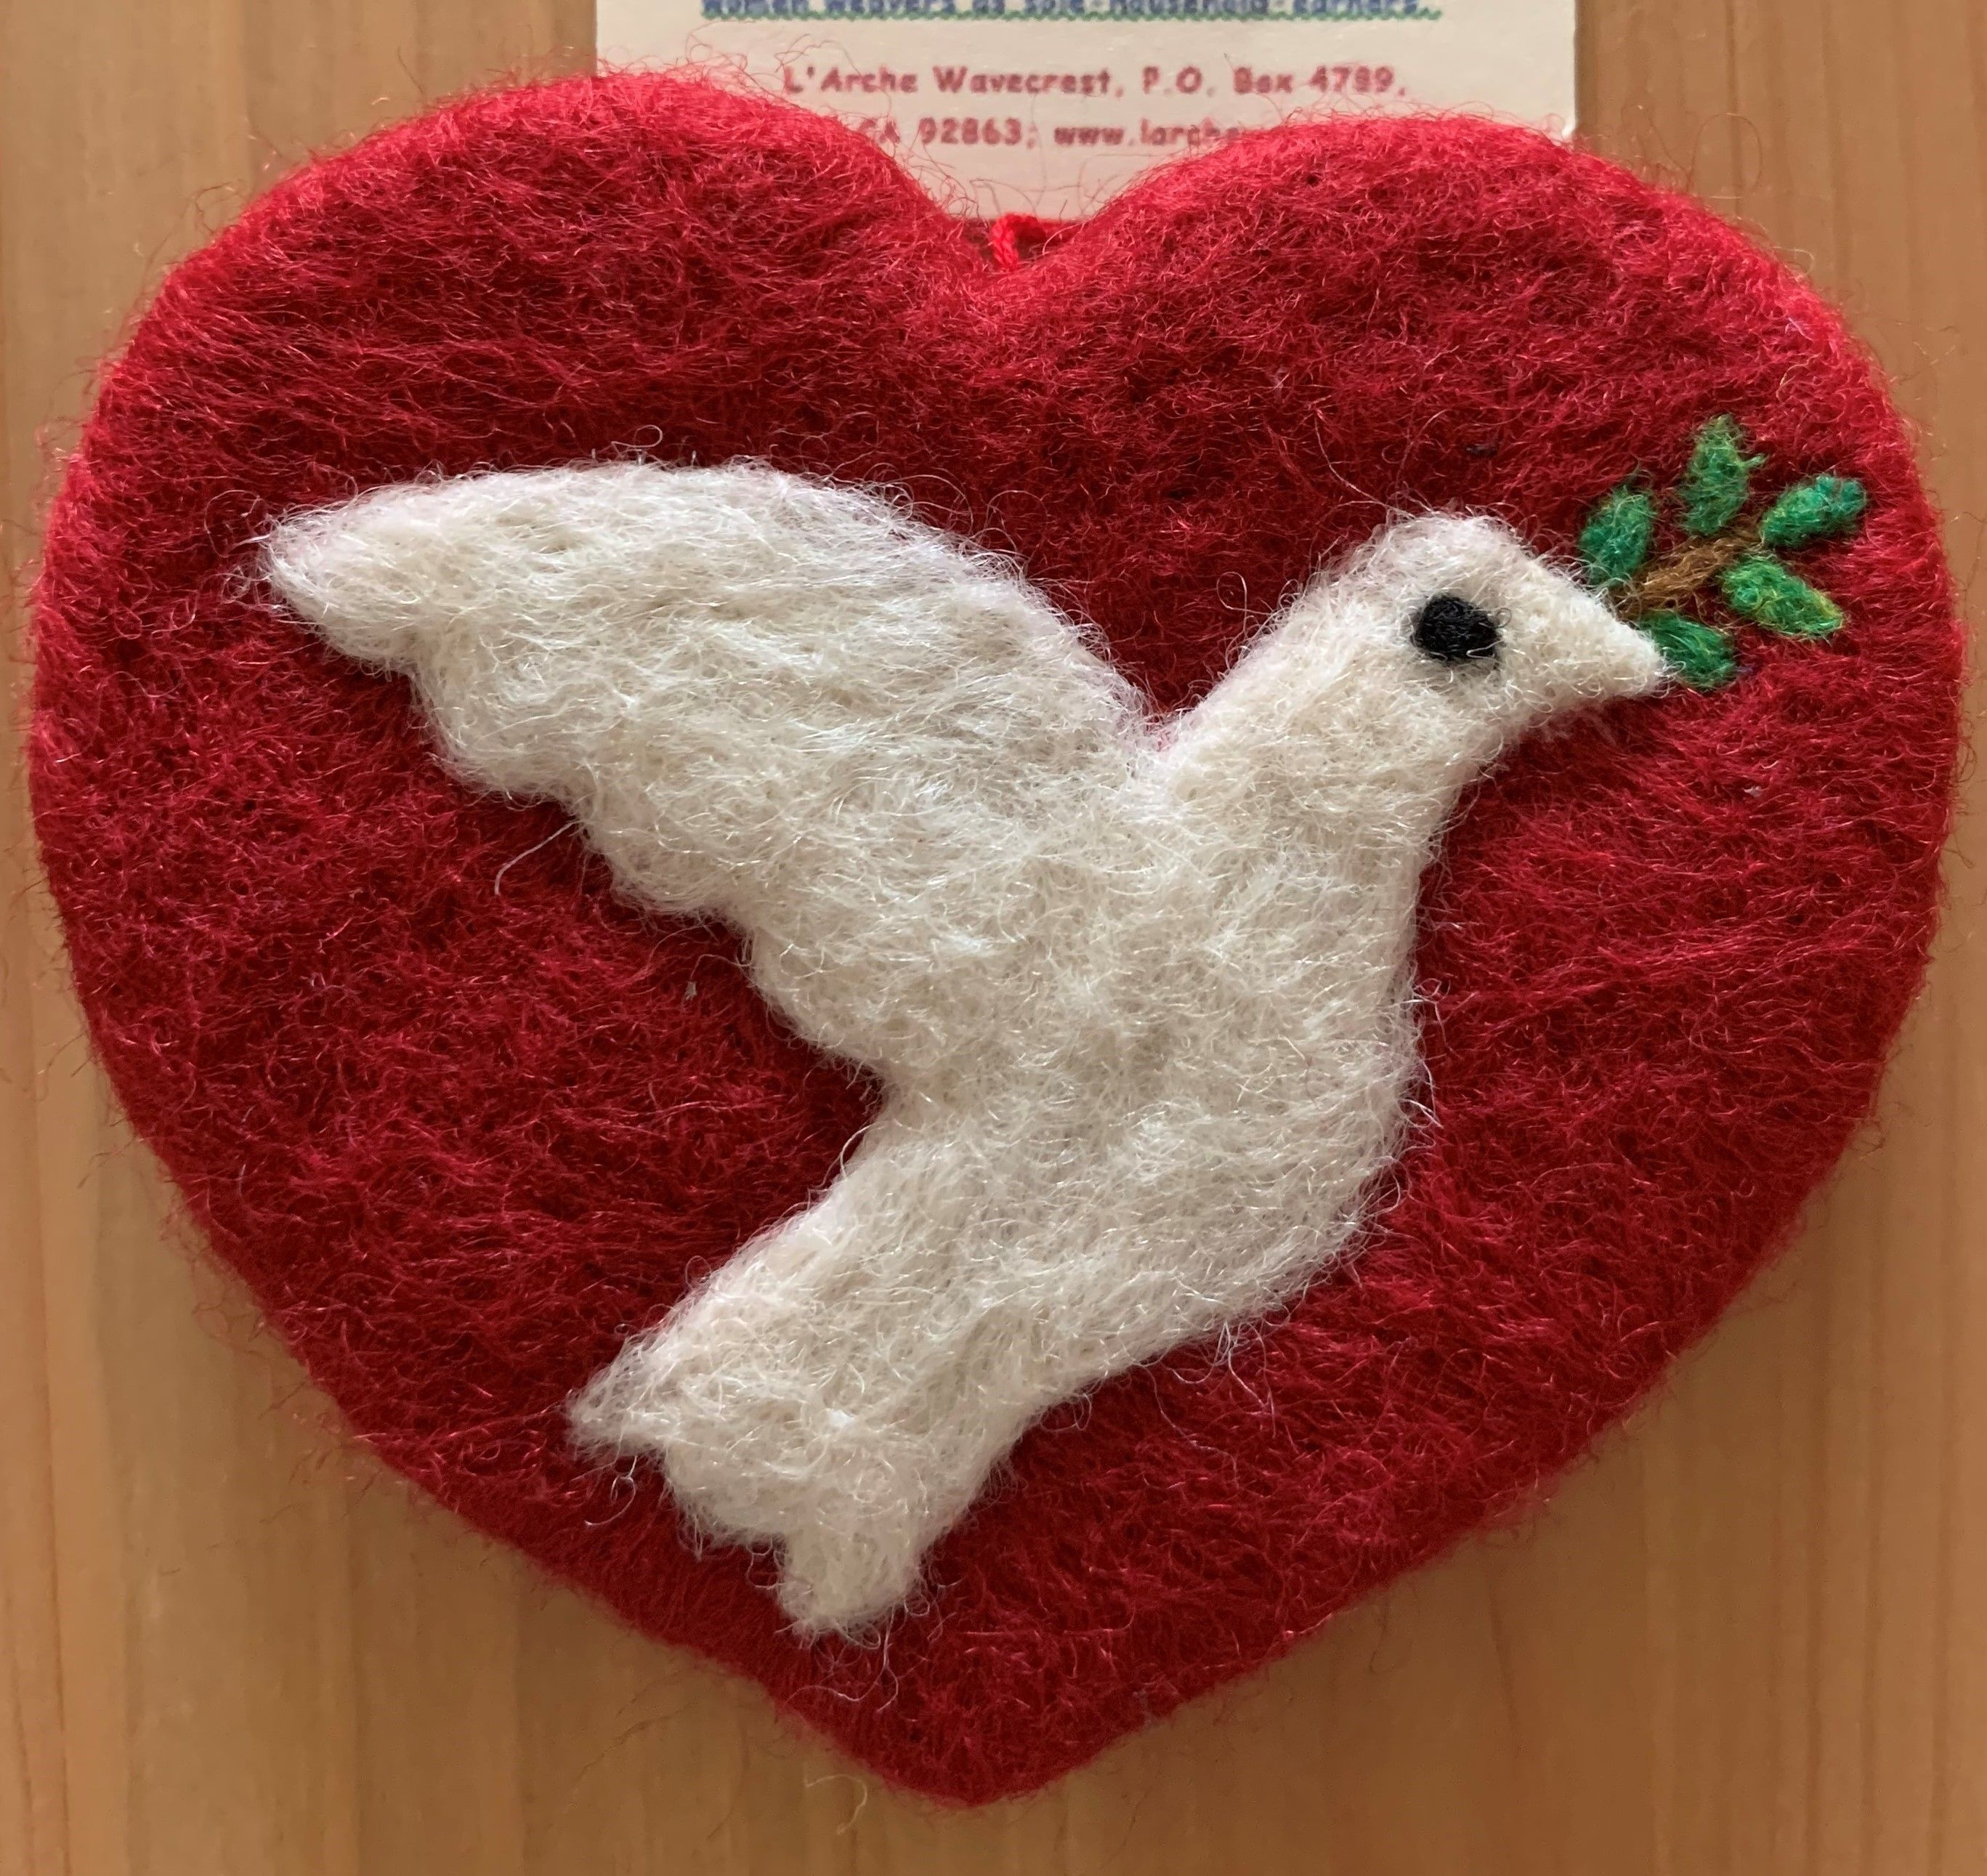 A felt heart-shaped tree ornament, crafted by Guatemalan women